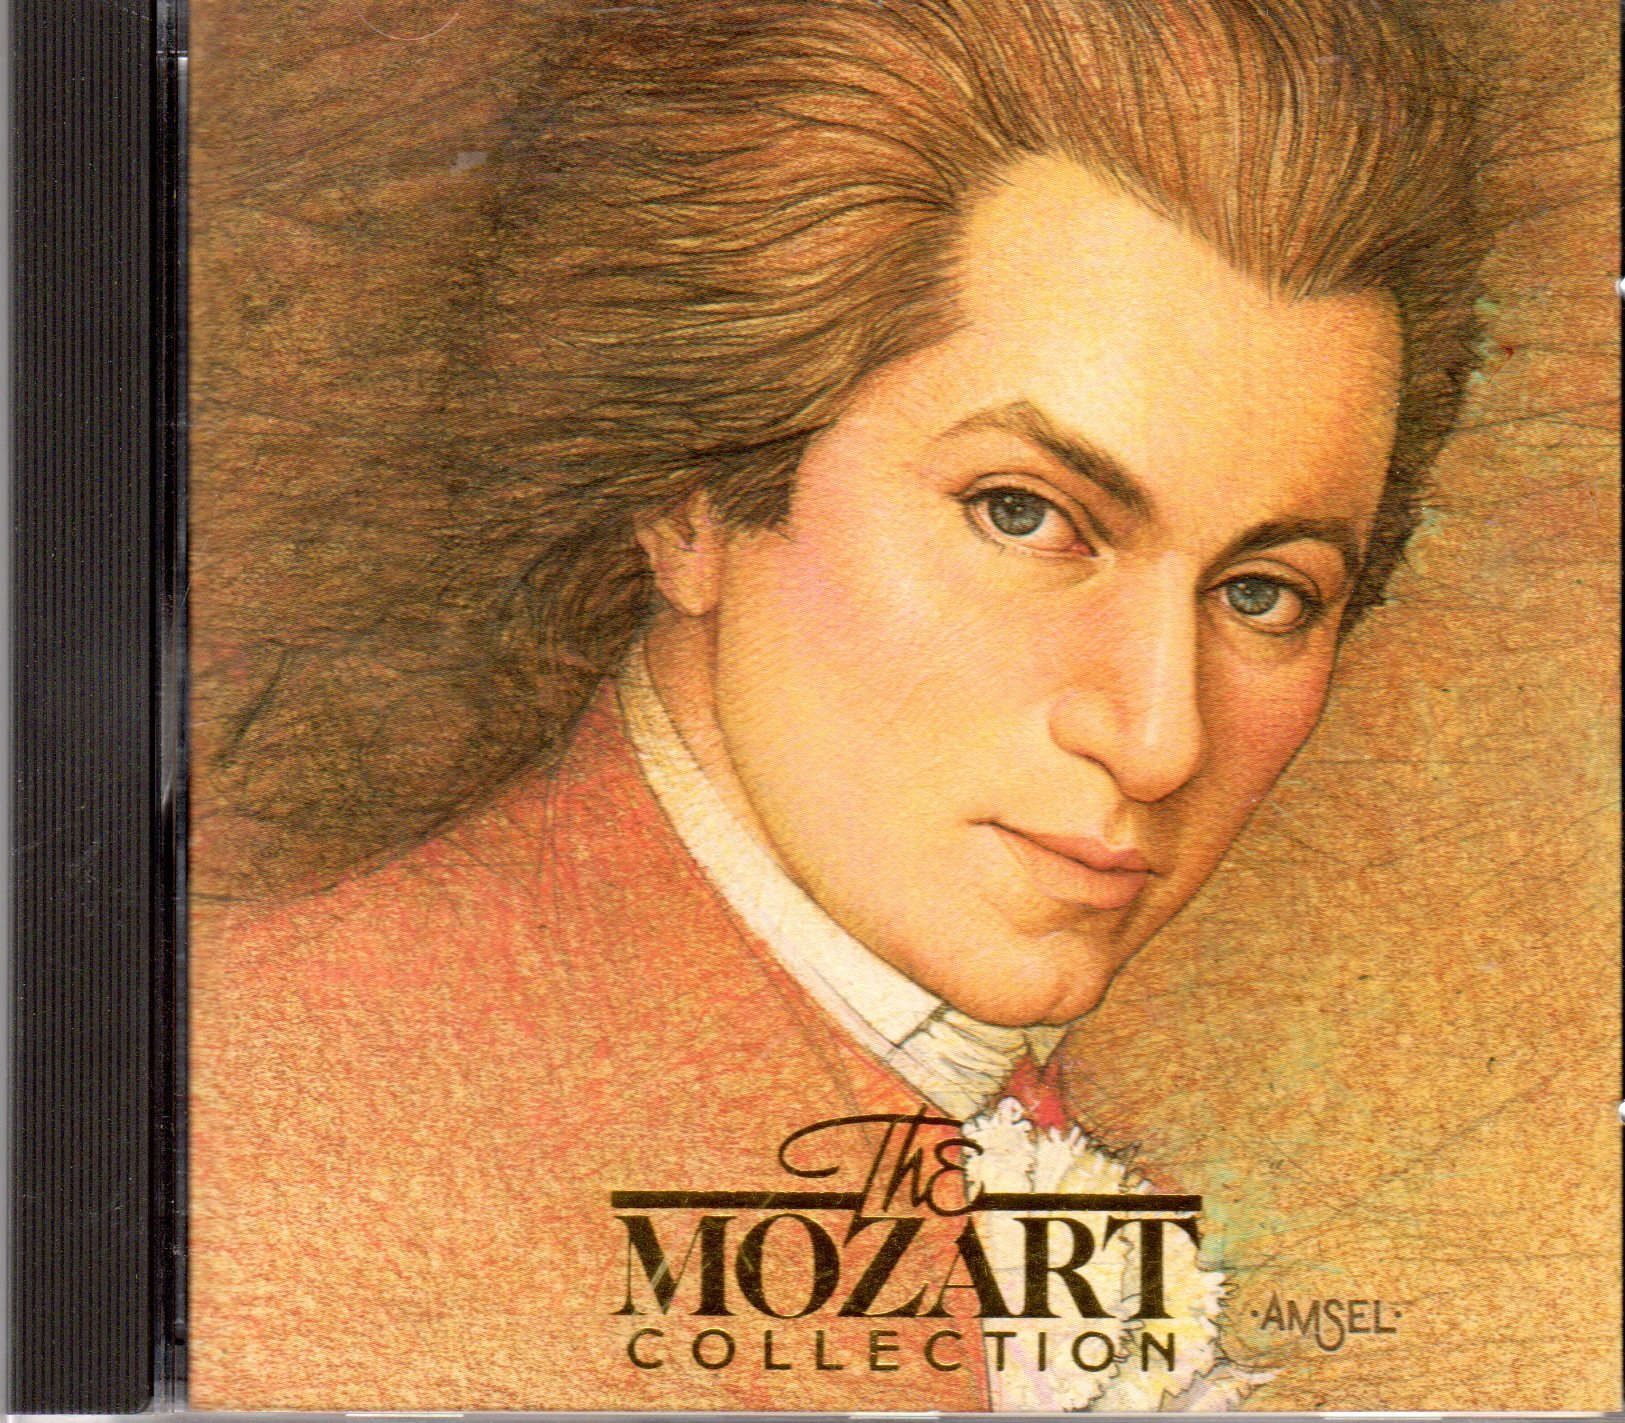 The Mozart Collection: Smphonies Nos. 30, 31, 36; Minuet in C, Audio CD, 1987. by Time-Life Music